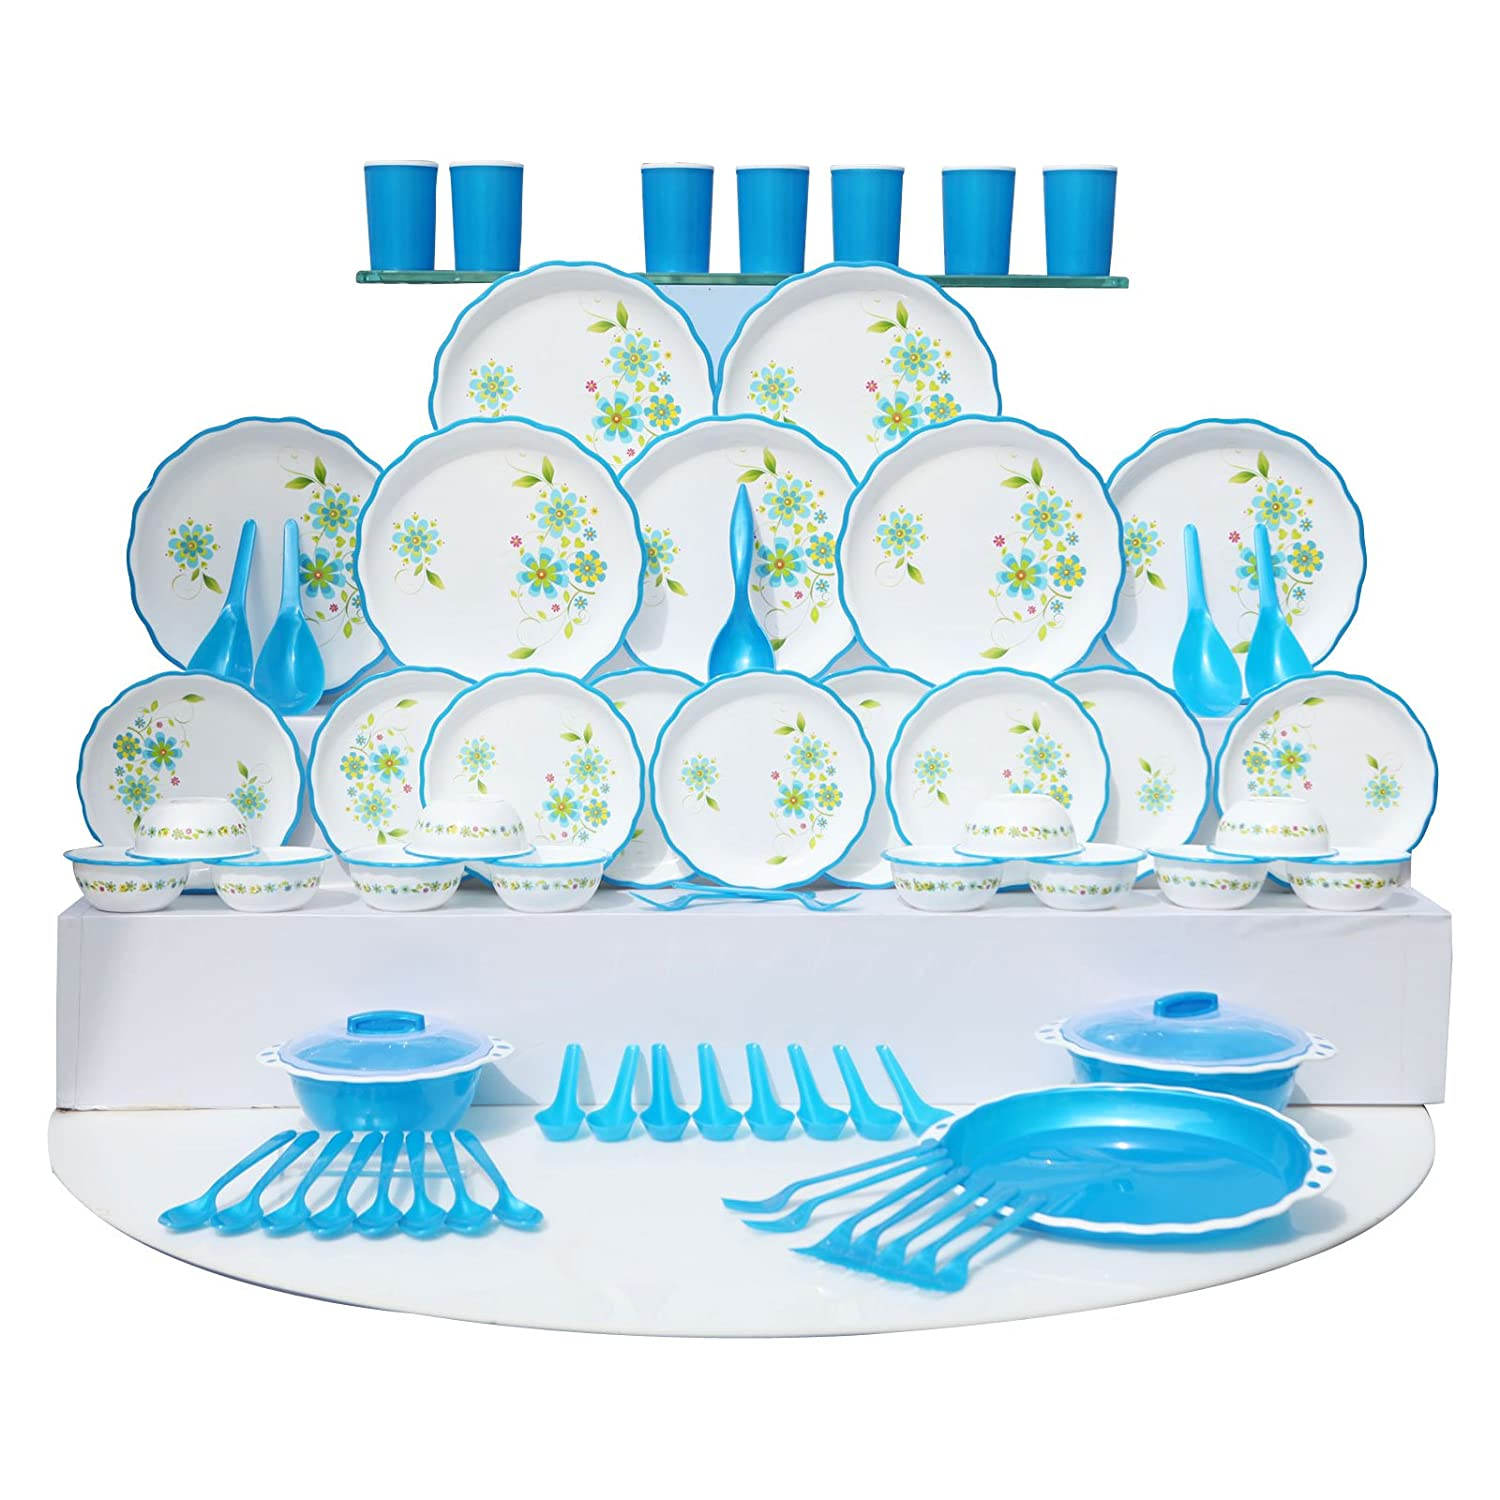 Buy Joyo Plastic Dinner Set, 84-Pieces, Blue Online at Low Prices in ...